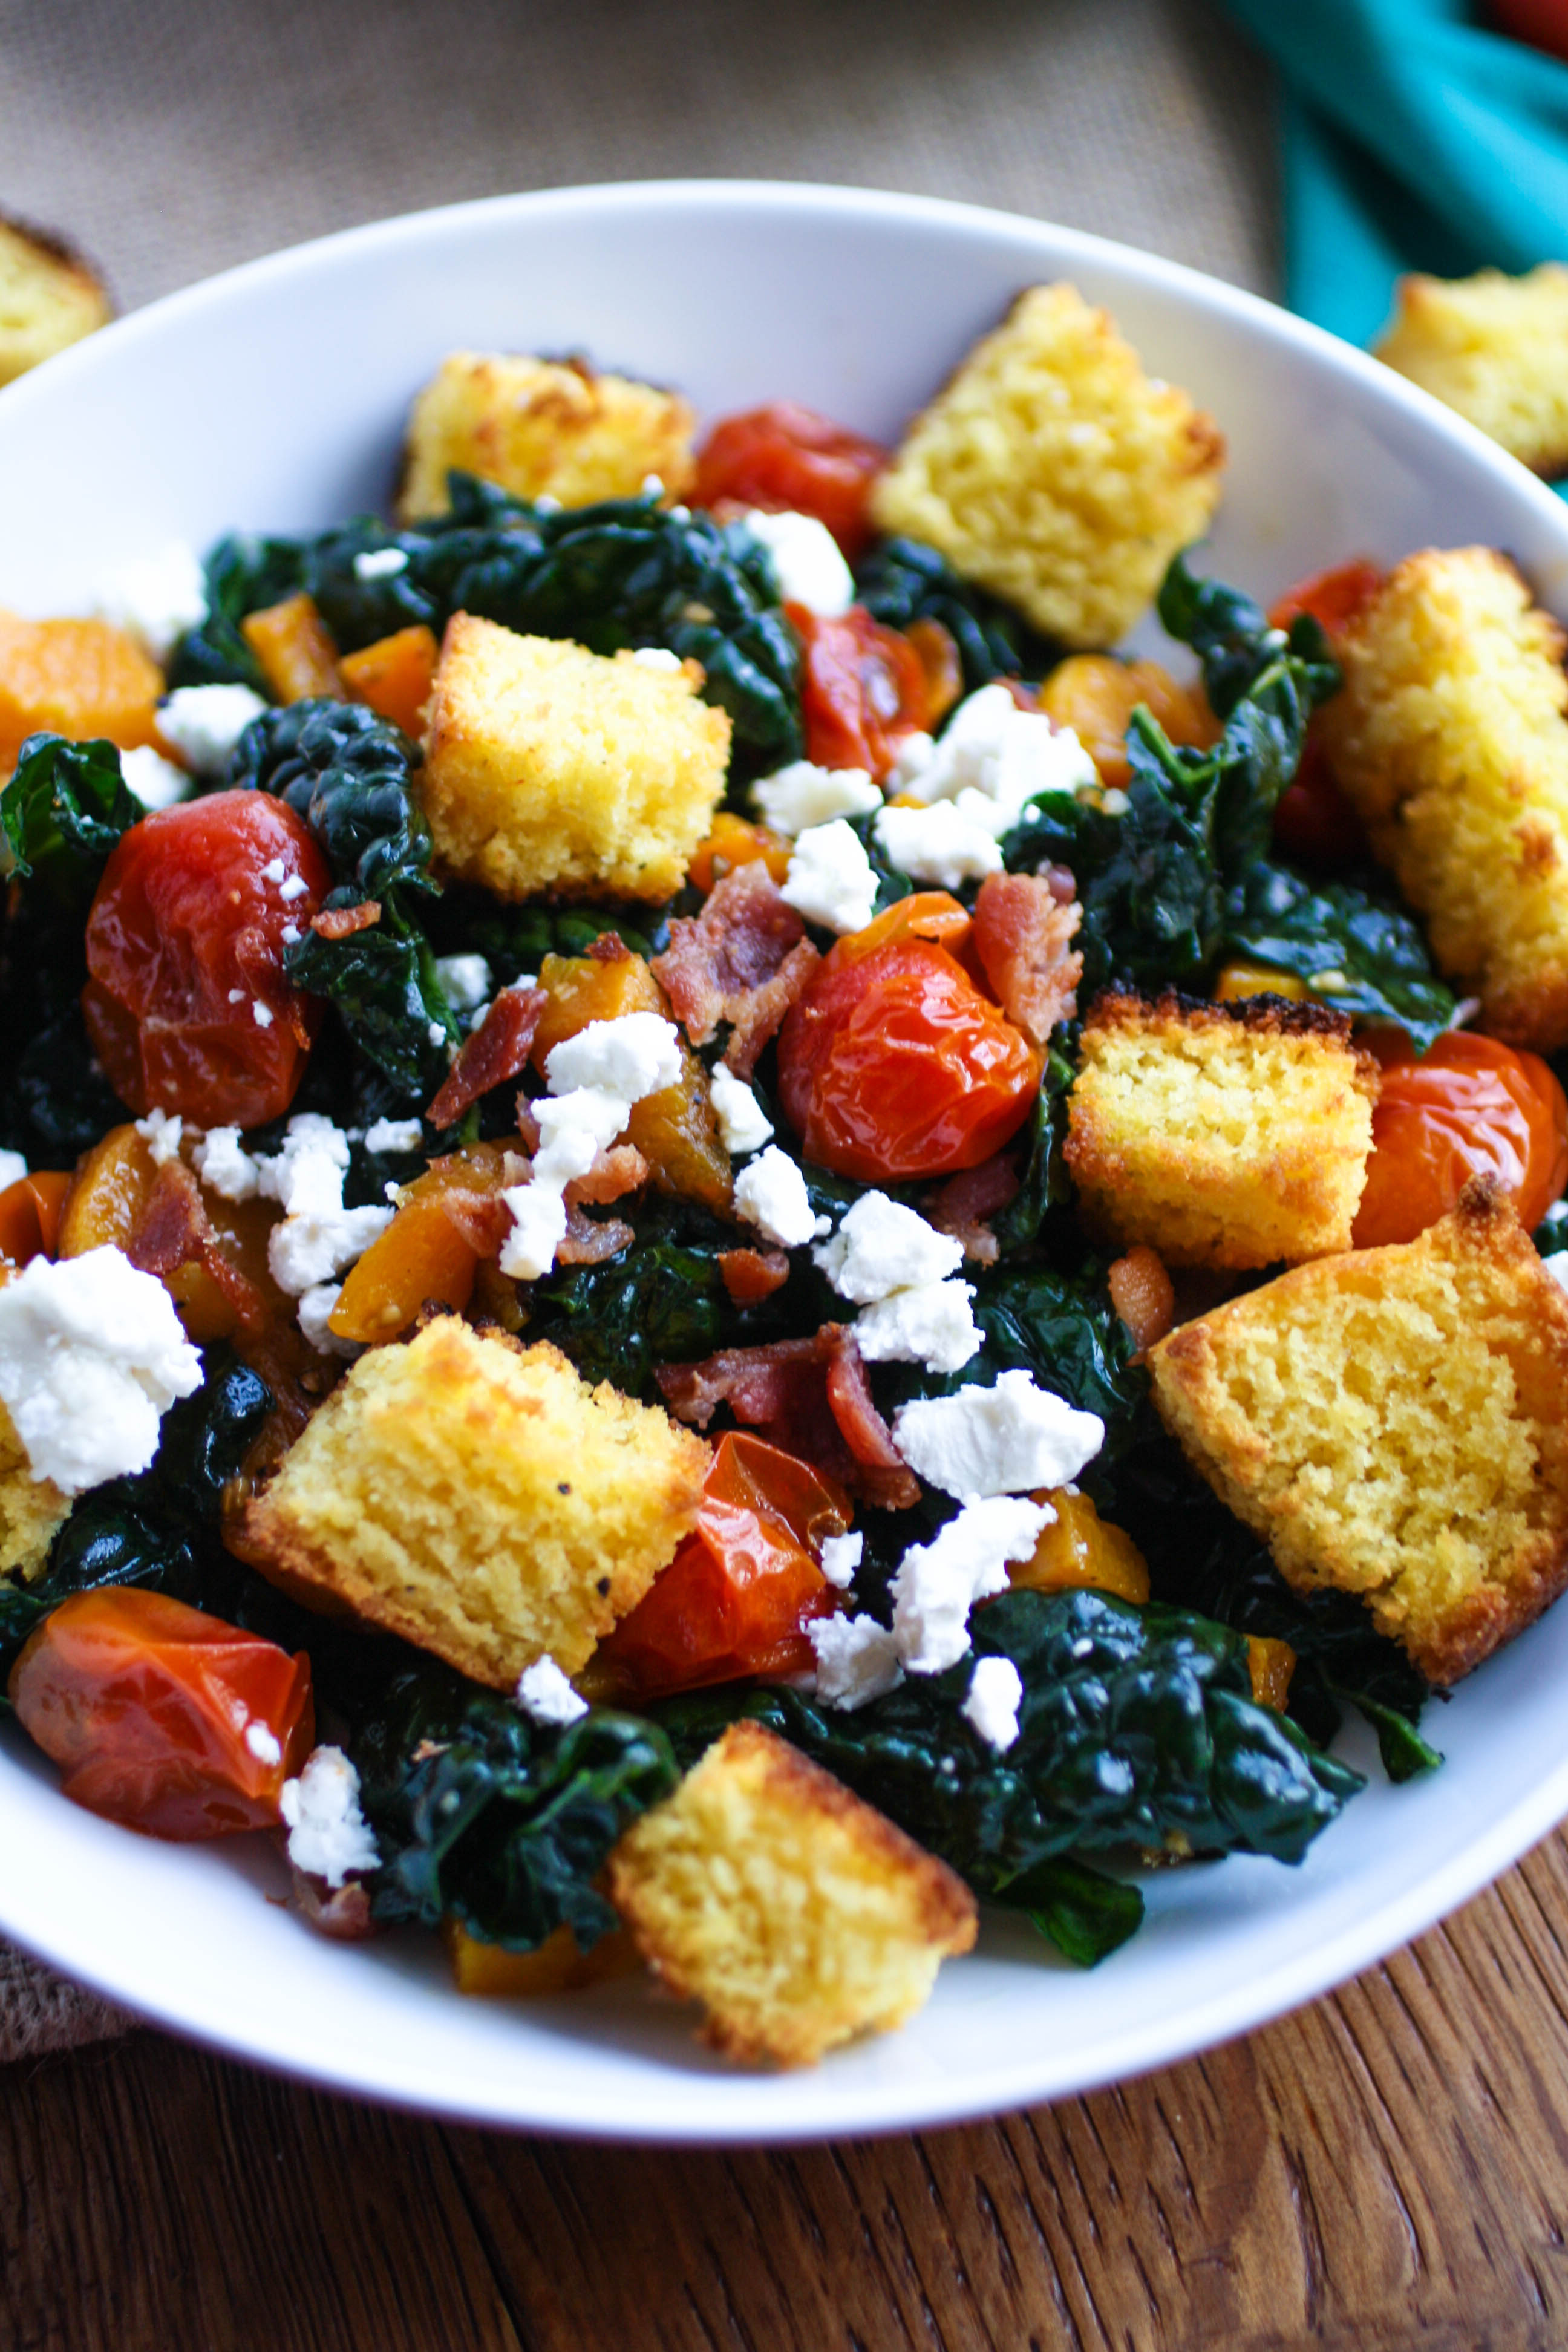 Kale and Cornbread Crouton Salad makes a fabulous day-after Thanksgiving dish. You'll love using up your Thanksgiving leftovers to make this salad -- especially that cornbread!